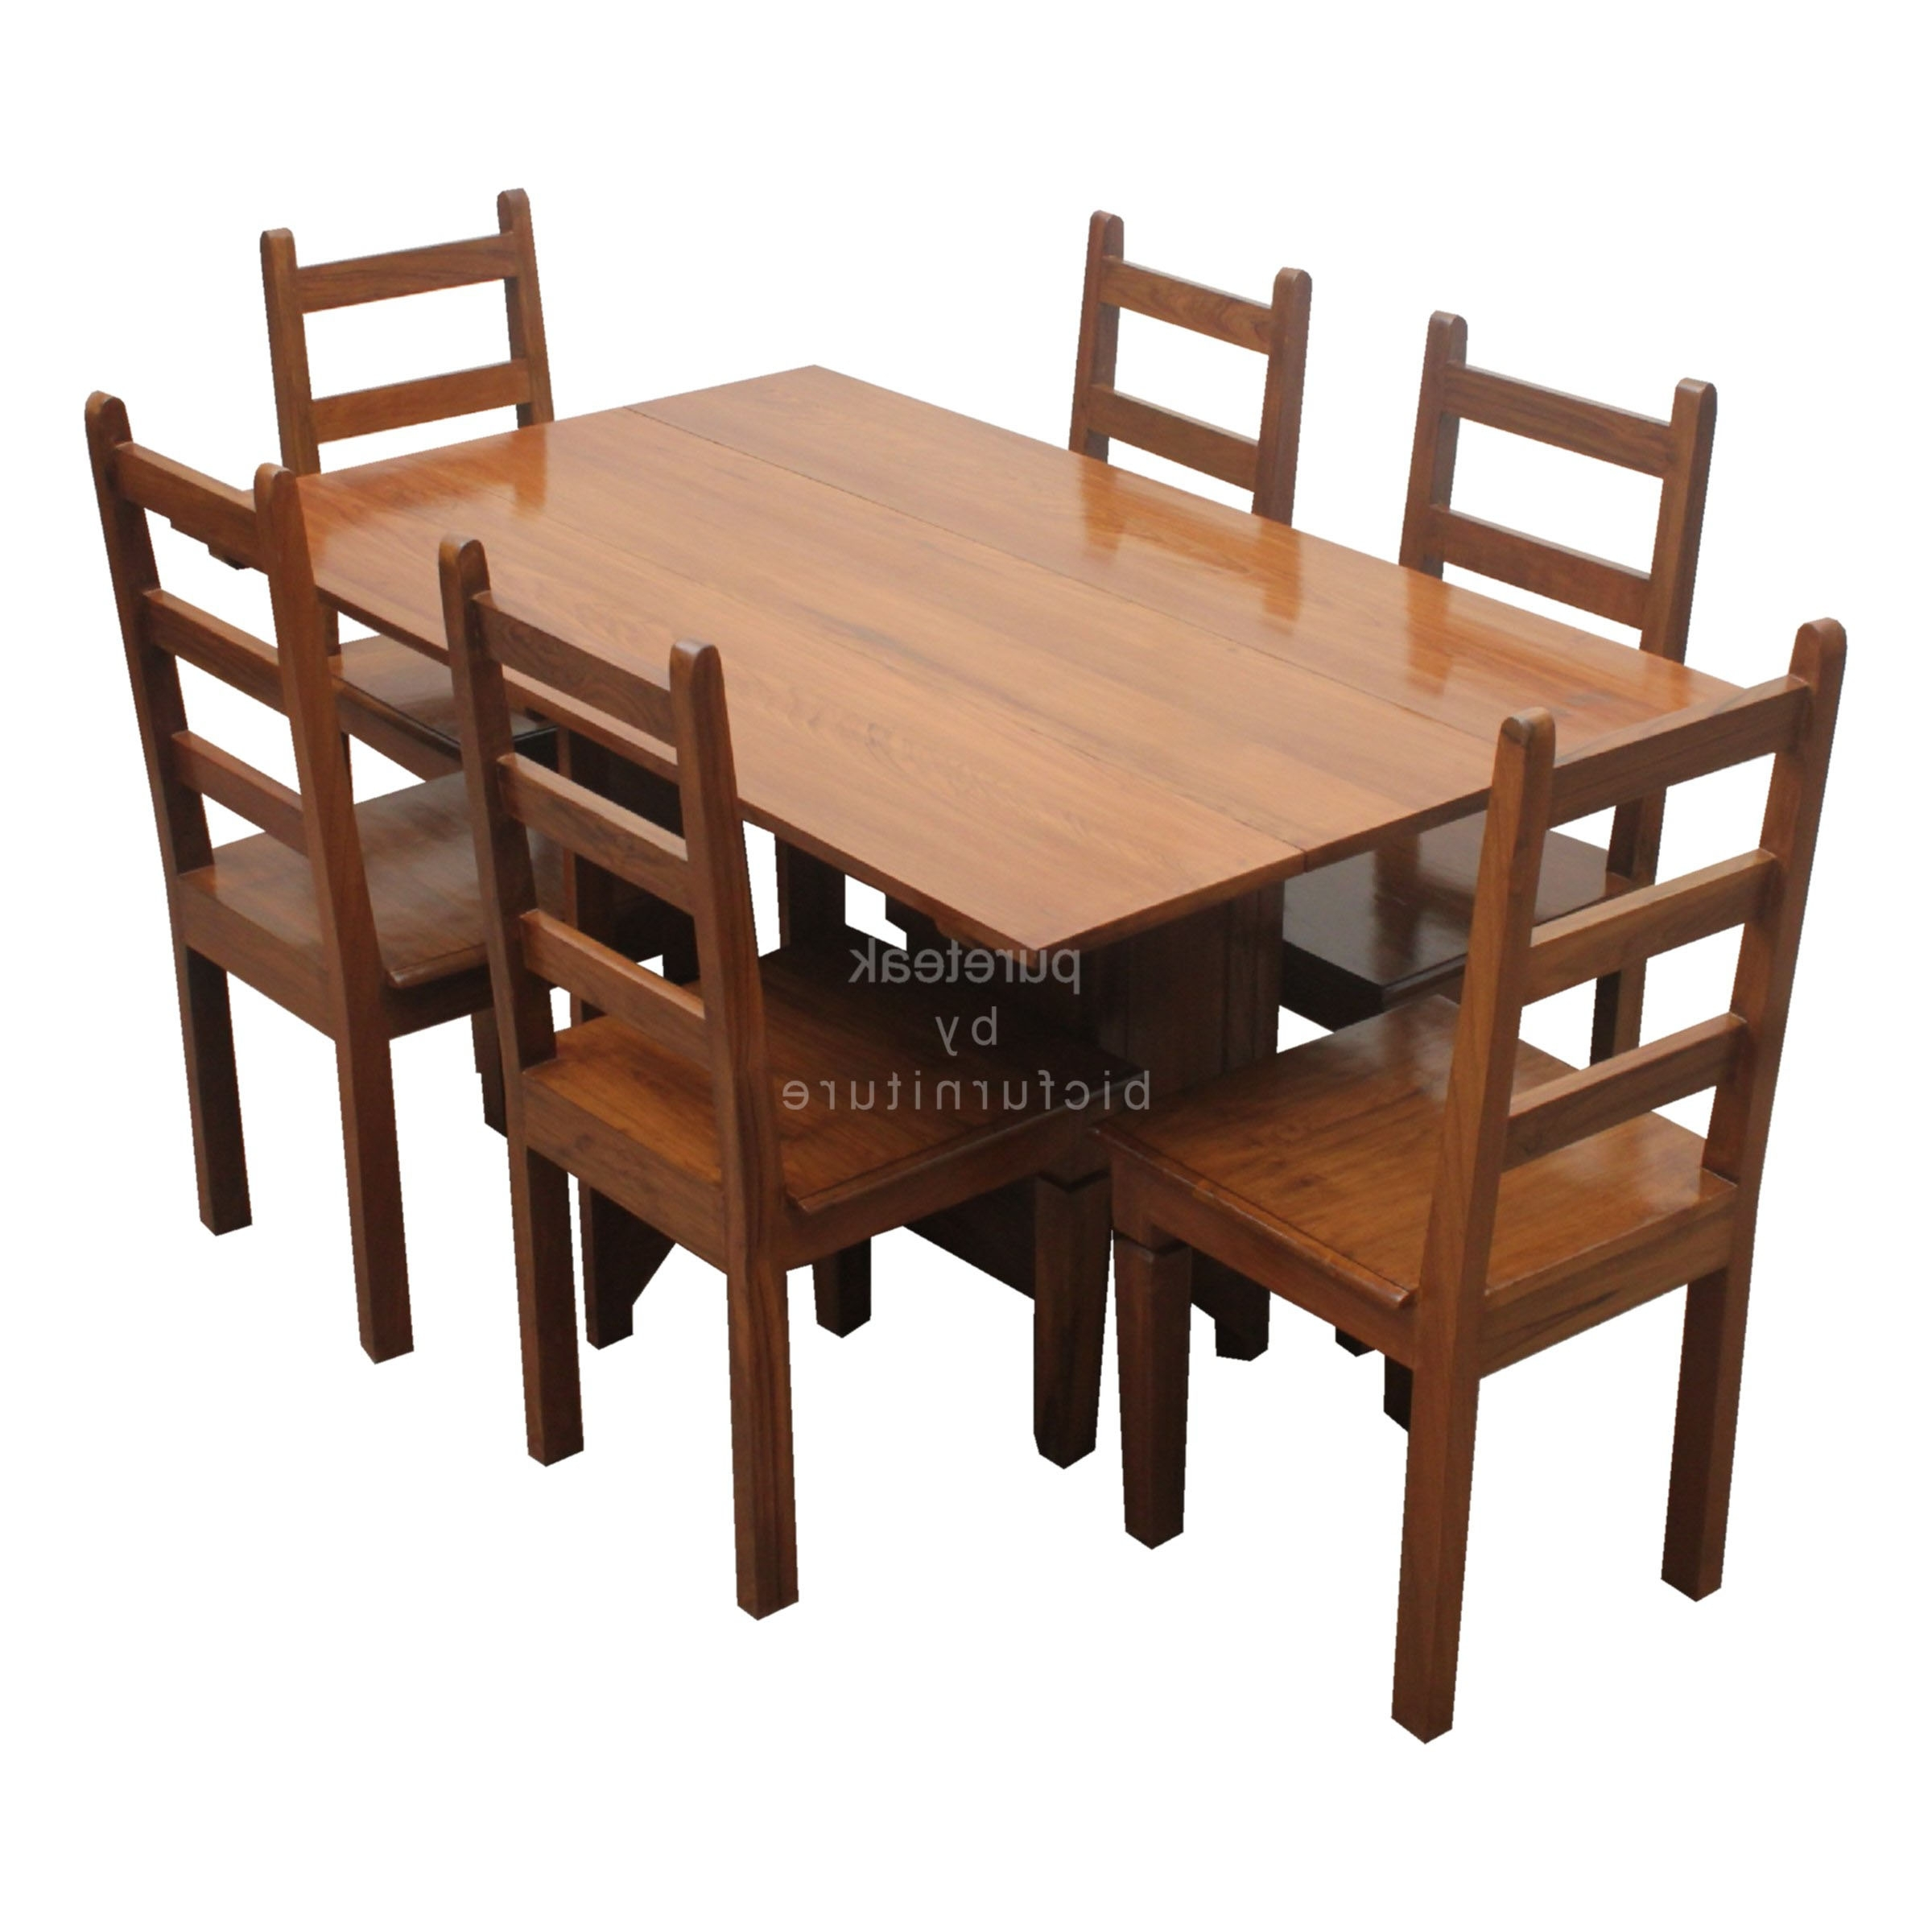 Beautiful 6 Seater Dining Table Sets Made In Solid Wood Throughout Widely Used Cheap 6 Seater Dining Tables And Chairs (Gallery 24 of 25)